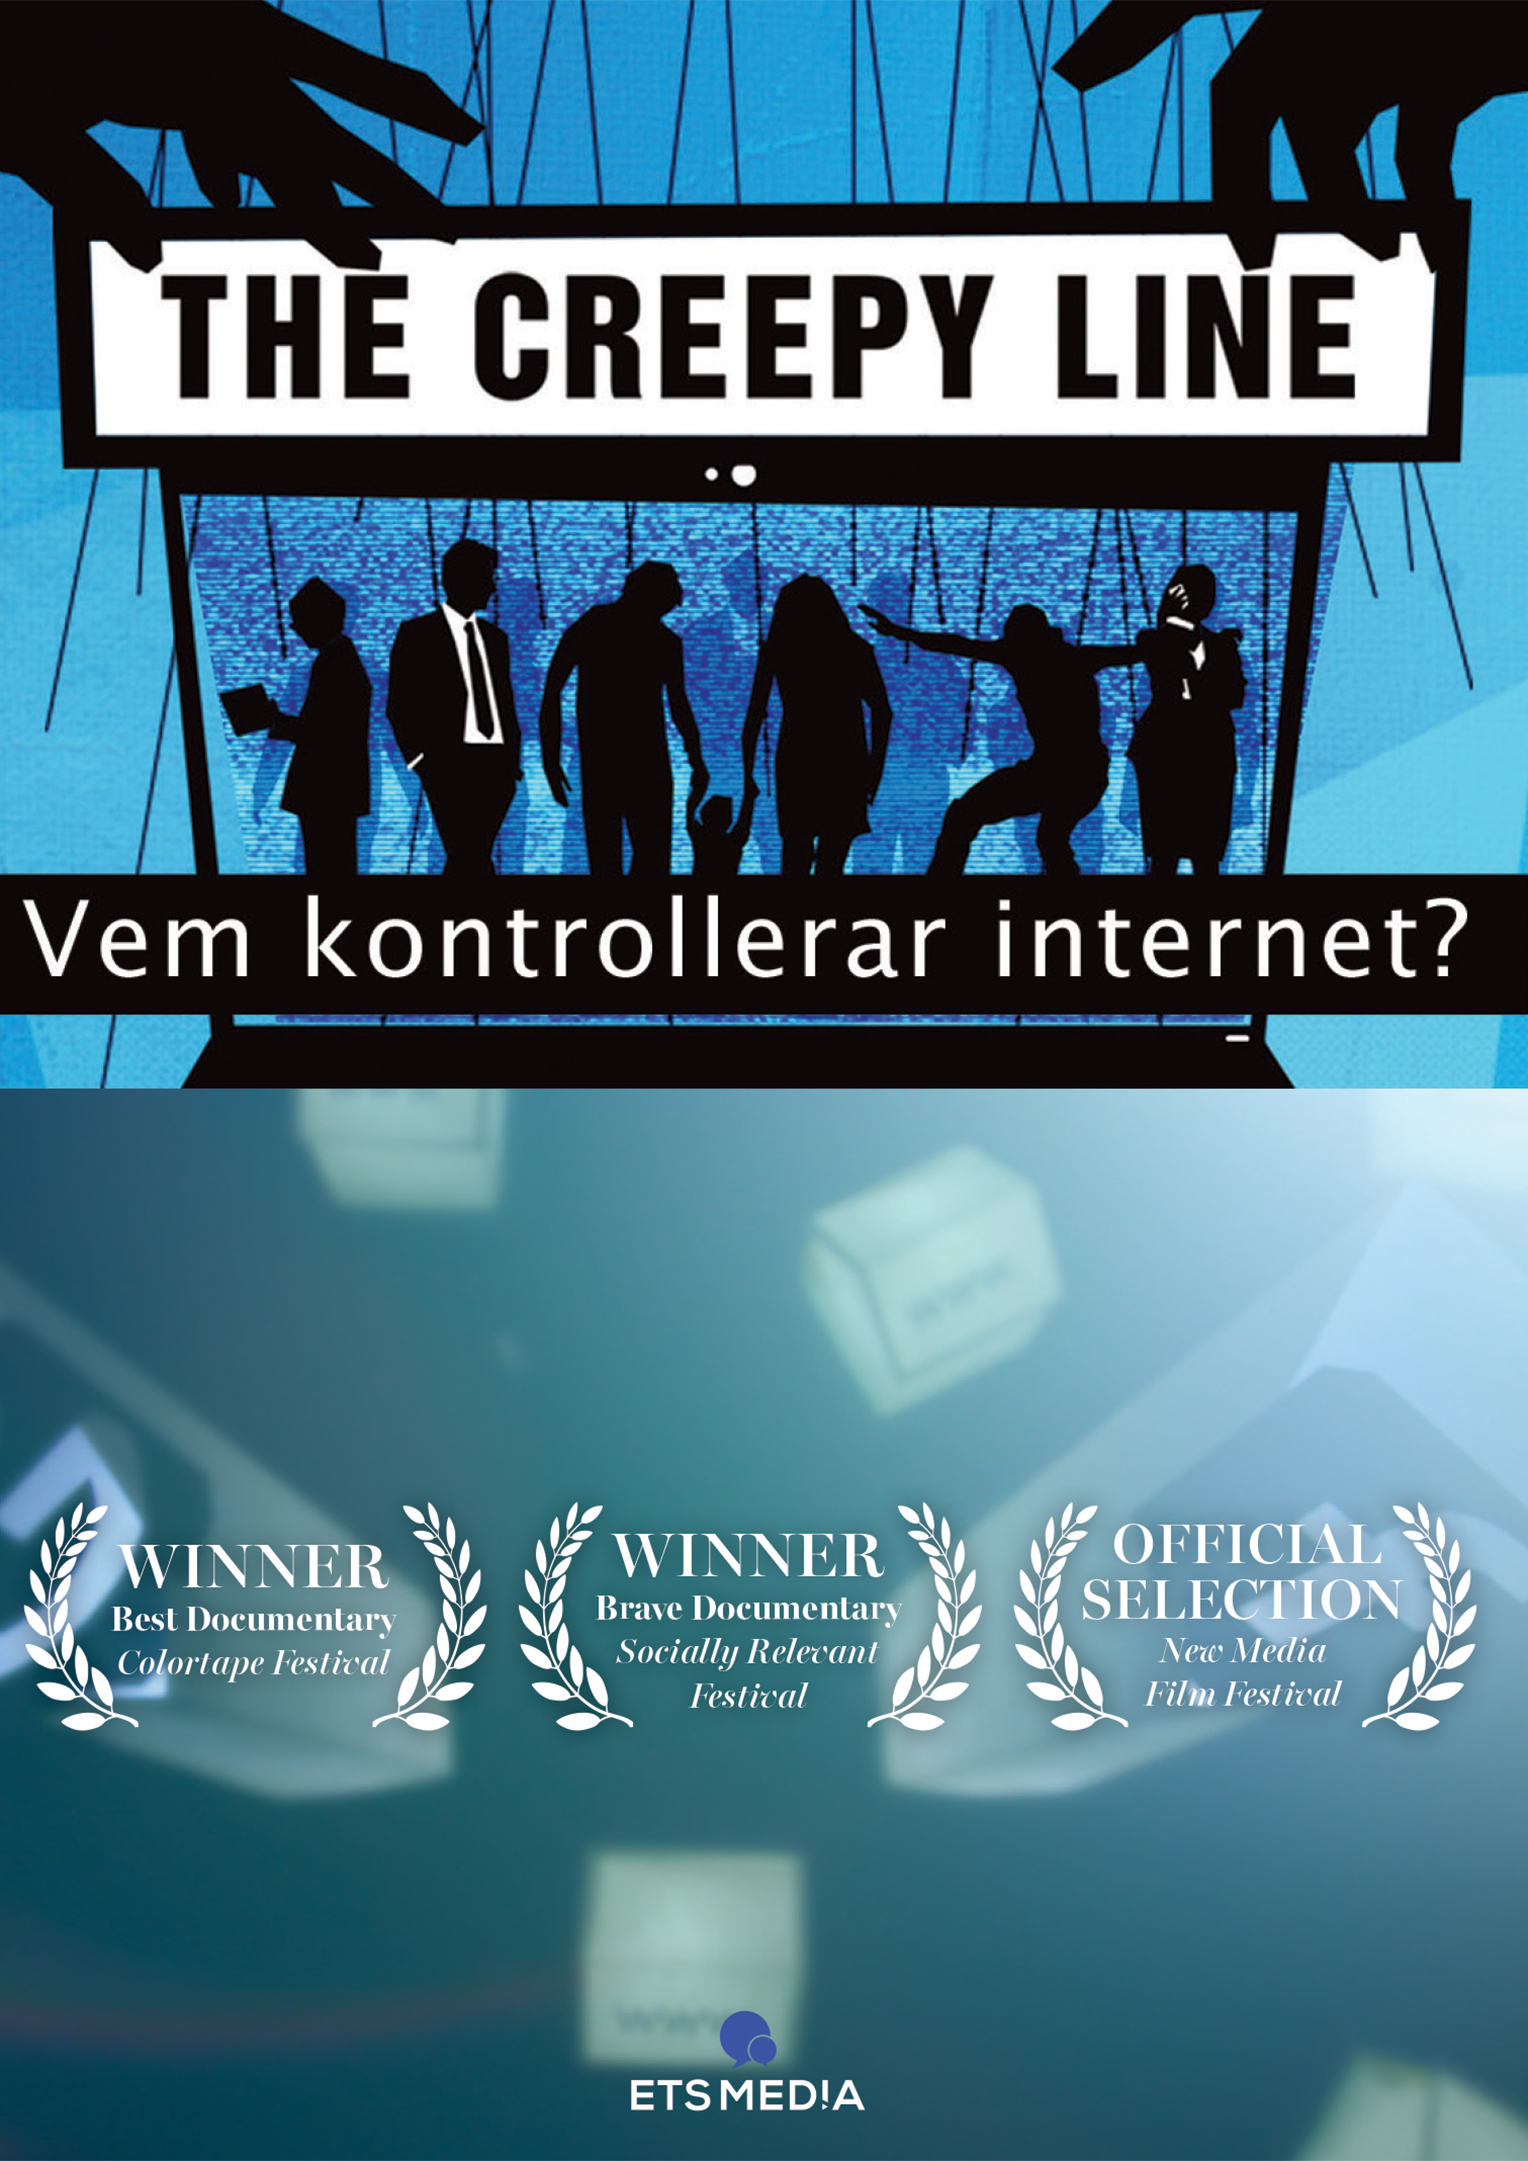 The Creepy Line [Elektronisk resurs] / regi: M.A. Taylor.